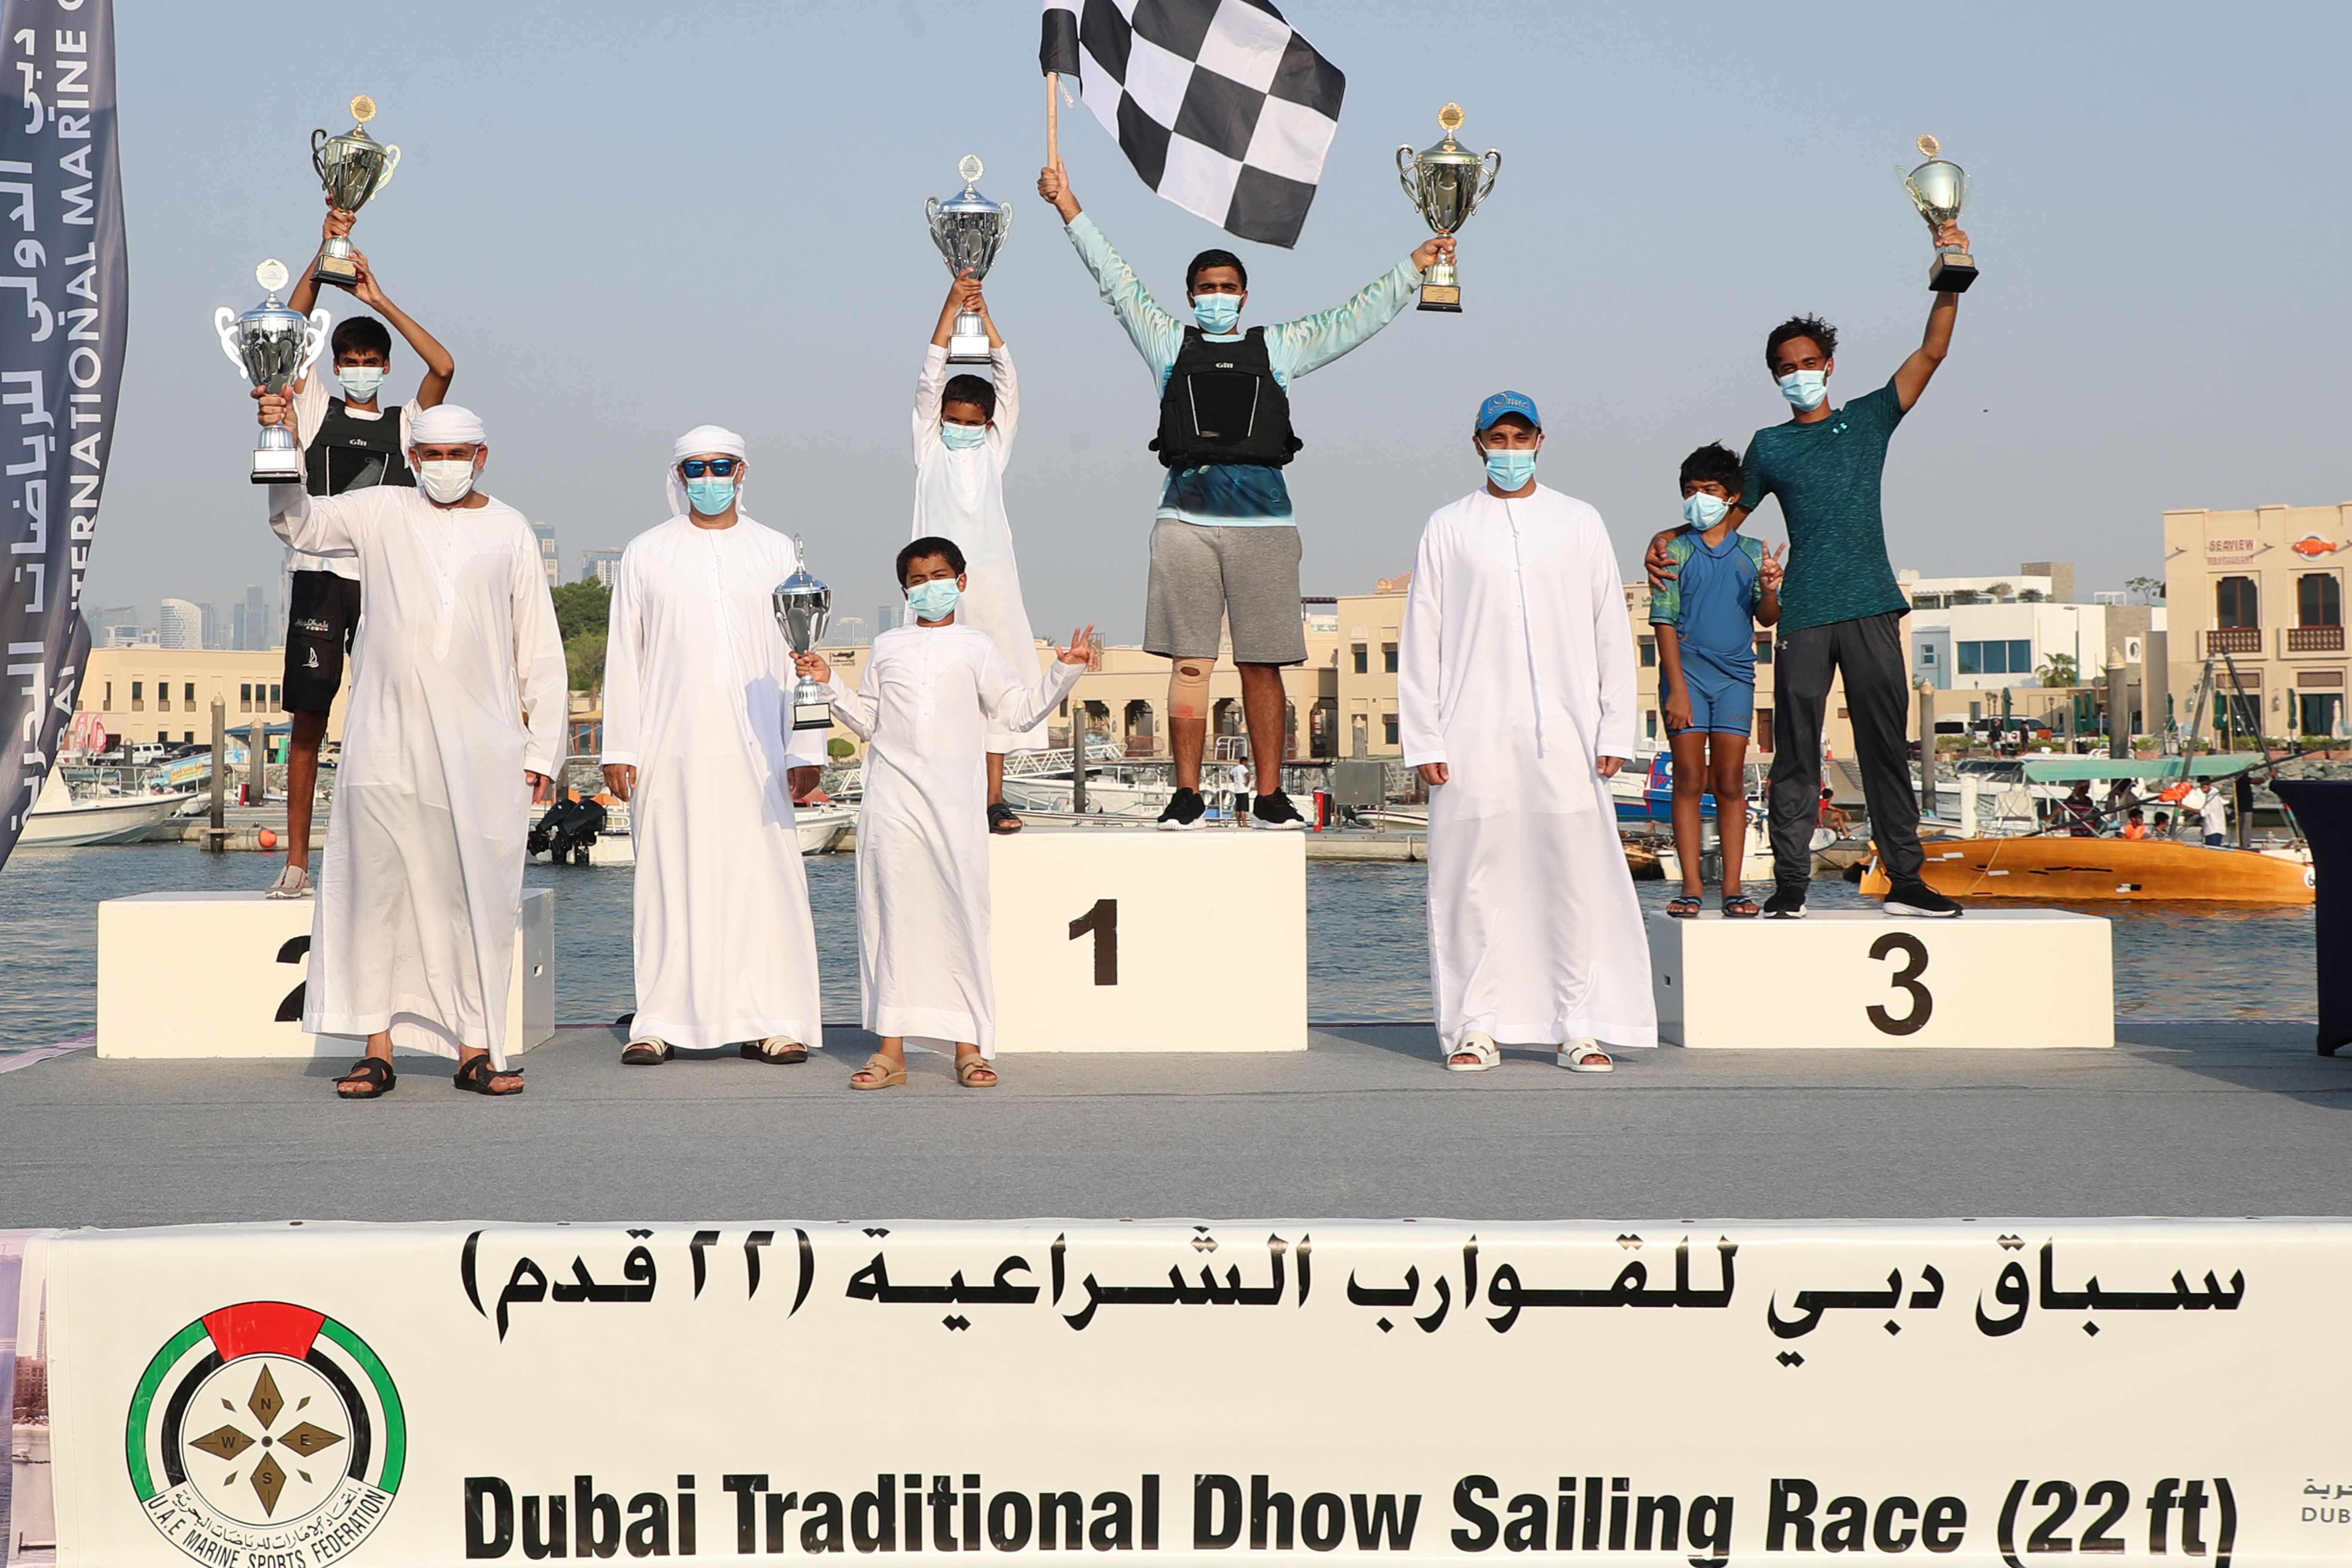 (Dahis 18 ) Champion of the 22ft Dhow Race in Youth Category